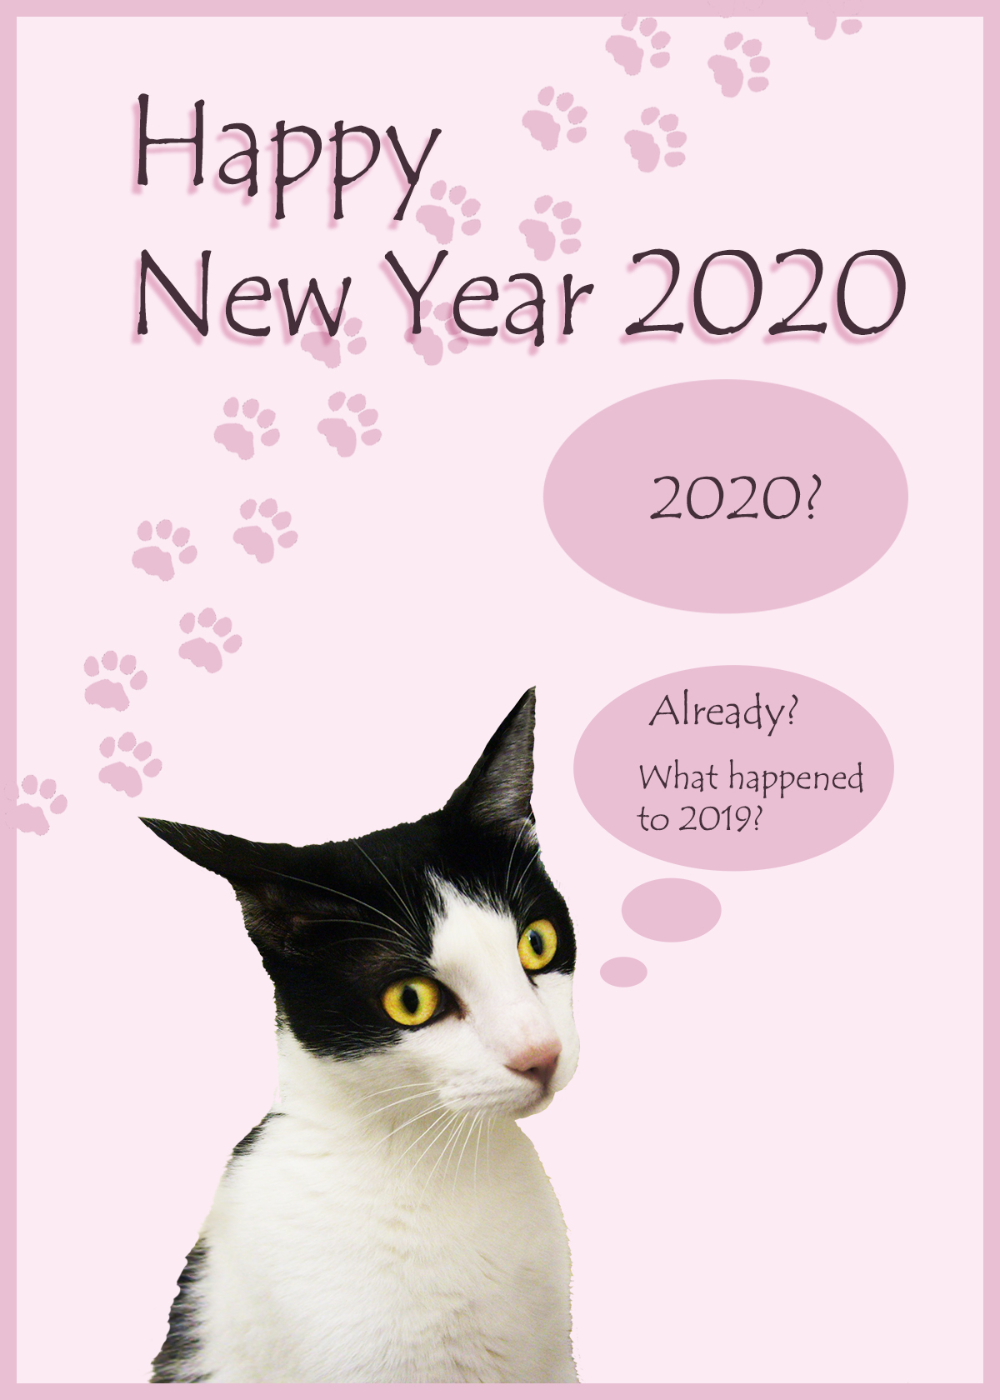 Pin by Linda Walker on NEW YEARS Funny new year, Happy